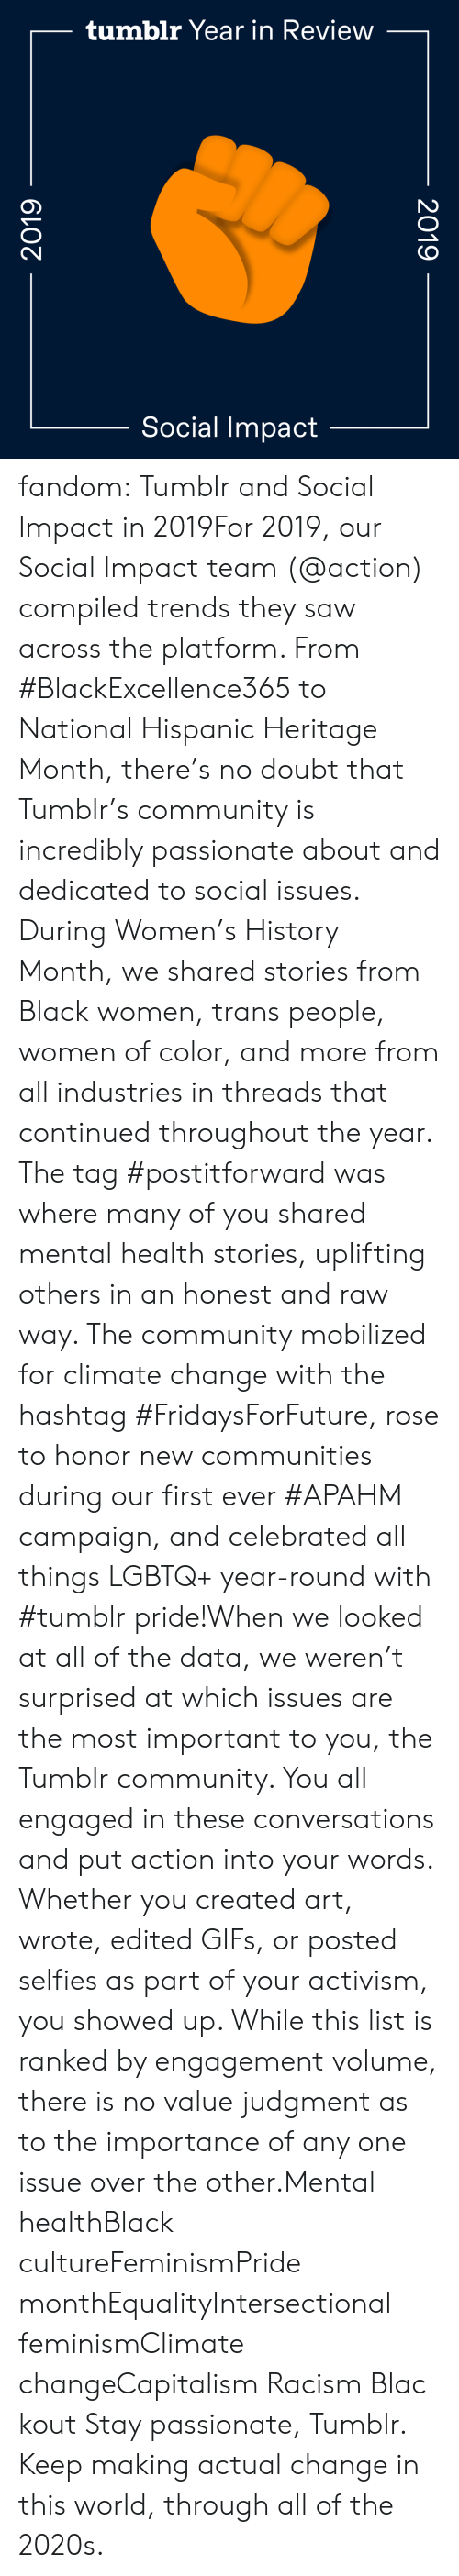 Engagement: tumblr Year in Review  Social Impact  2019  2019 fandom:  Tumblr and Social Impact in 2019For 2019, our Social Impact team (@action​) compiled trends they saw across the platform. From #BlackExcellence365 to National Hispanic Heritage Month, there's no doubt that Tumblr's community is incredibly passionate about and dedicated to social issues. During Women's History Month, we shared stories from Black women, trans people, women of color, and more from all industries in threads that continued throughout the year. The tag #postitforward was where many of you shared mental health stories, uplifting others in an honest and raw way. The community mobilized for climate change with the hashtag #FridaysForFuture, rose to honor new communities during our first ever #APAHM campaign, and celebrated all things LGBTQ+ year-round with #tumblr pride!When we looked at all of the data, we weren't surprised at which issues are the most important to you, the Tumblr community. You all engaged in these conversations and put action into your words. Whether you created art, wrote, edited GIFs, or posted selfies as part of your activism, you showed up. While this list is ranked by engagement volume, there is no value judgment as to the importance of any one issue over the other.Mental healthBlack cultureFeminismPride monthEqualityIntersectional feminismClimate changeCapitalism Racism Blackout Stay passionate, Tumblr. Keep making actual change in this world, through all of the 2020s.